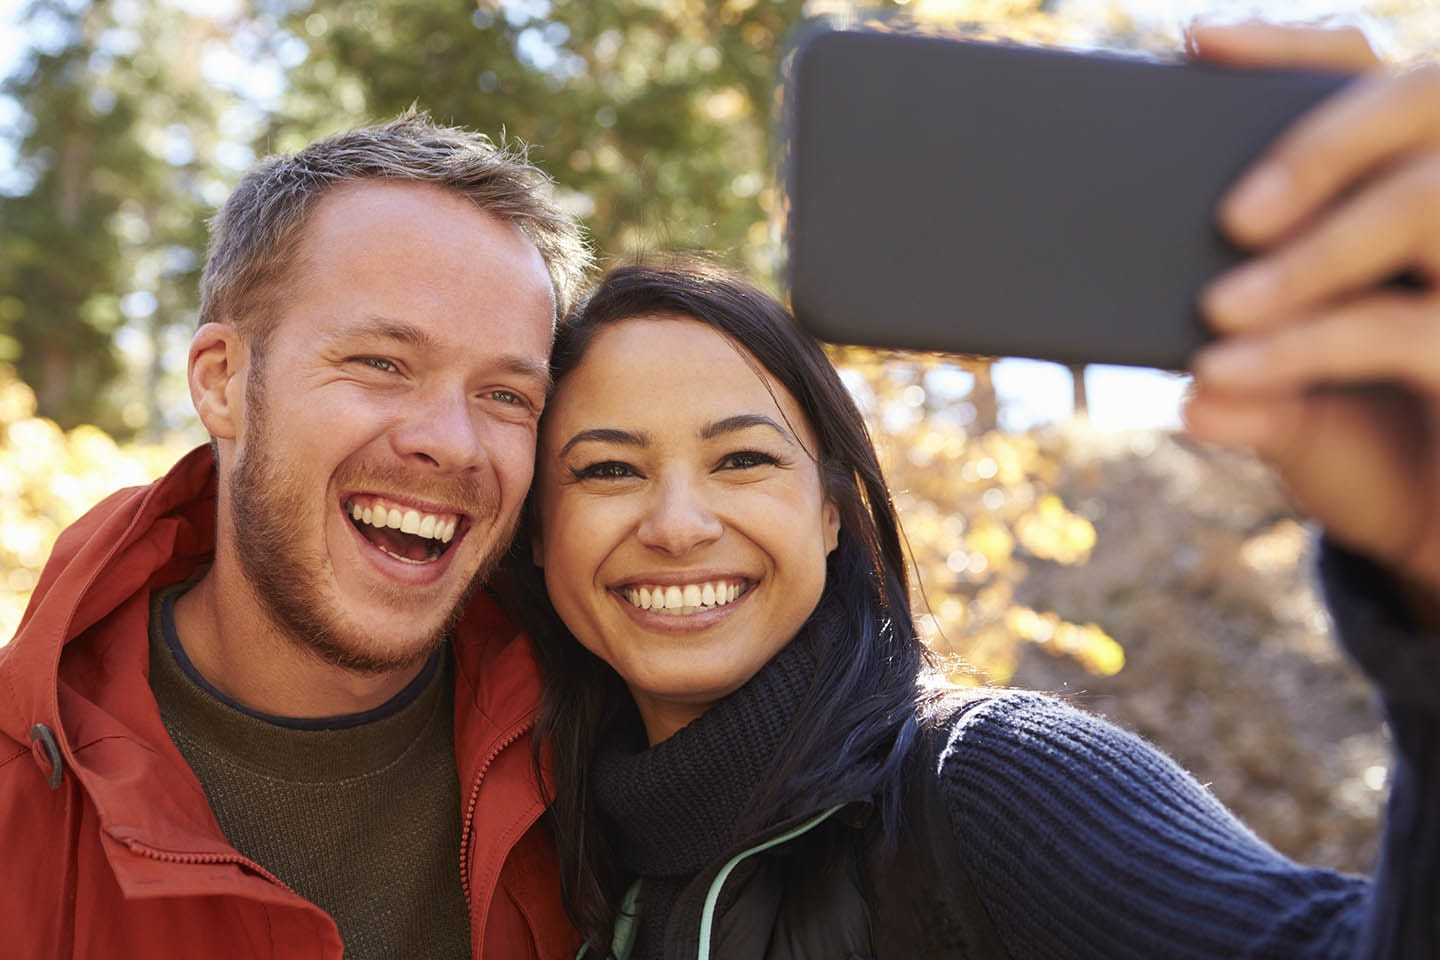 Couple smiling for a selfie